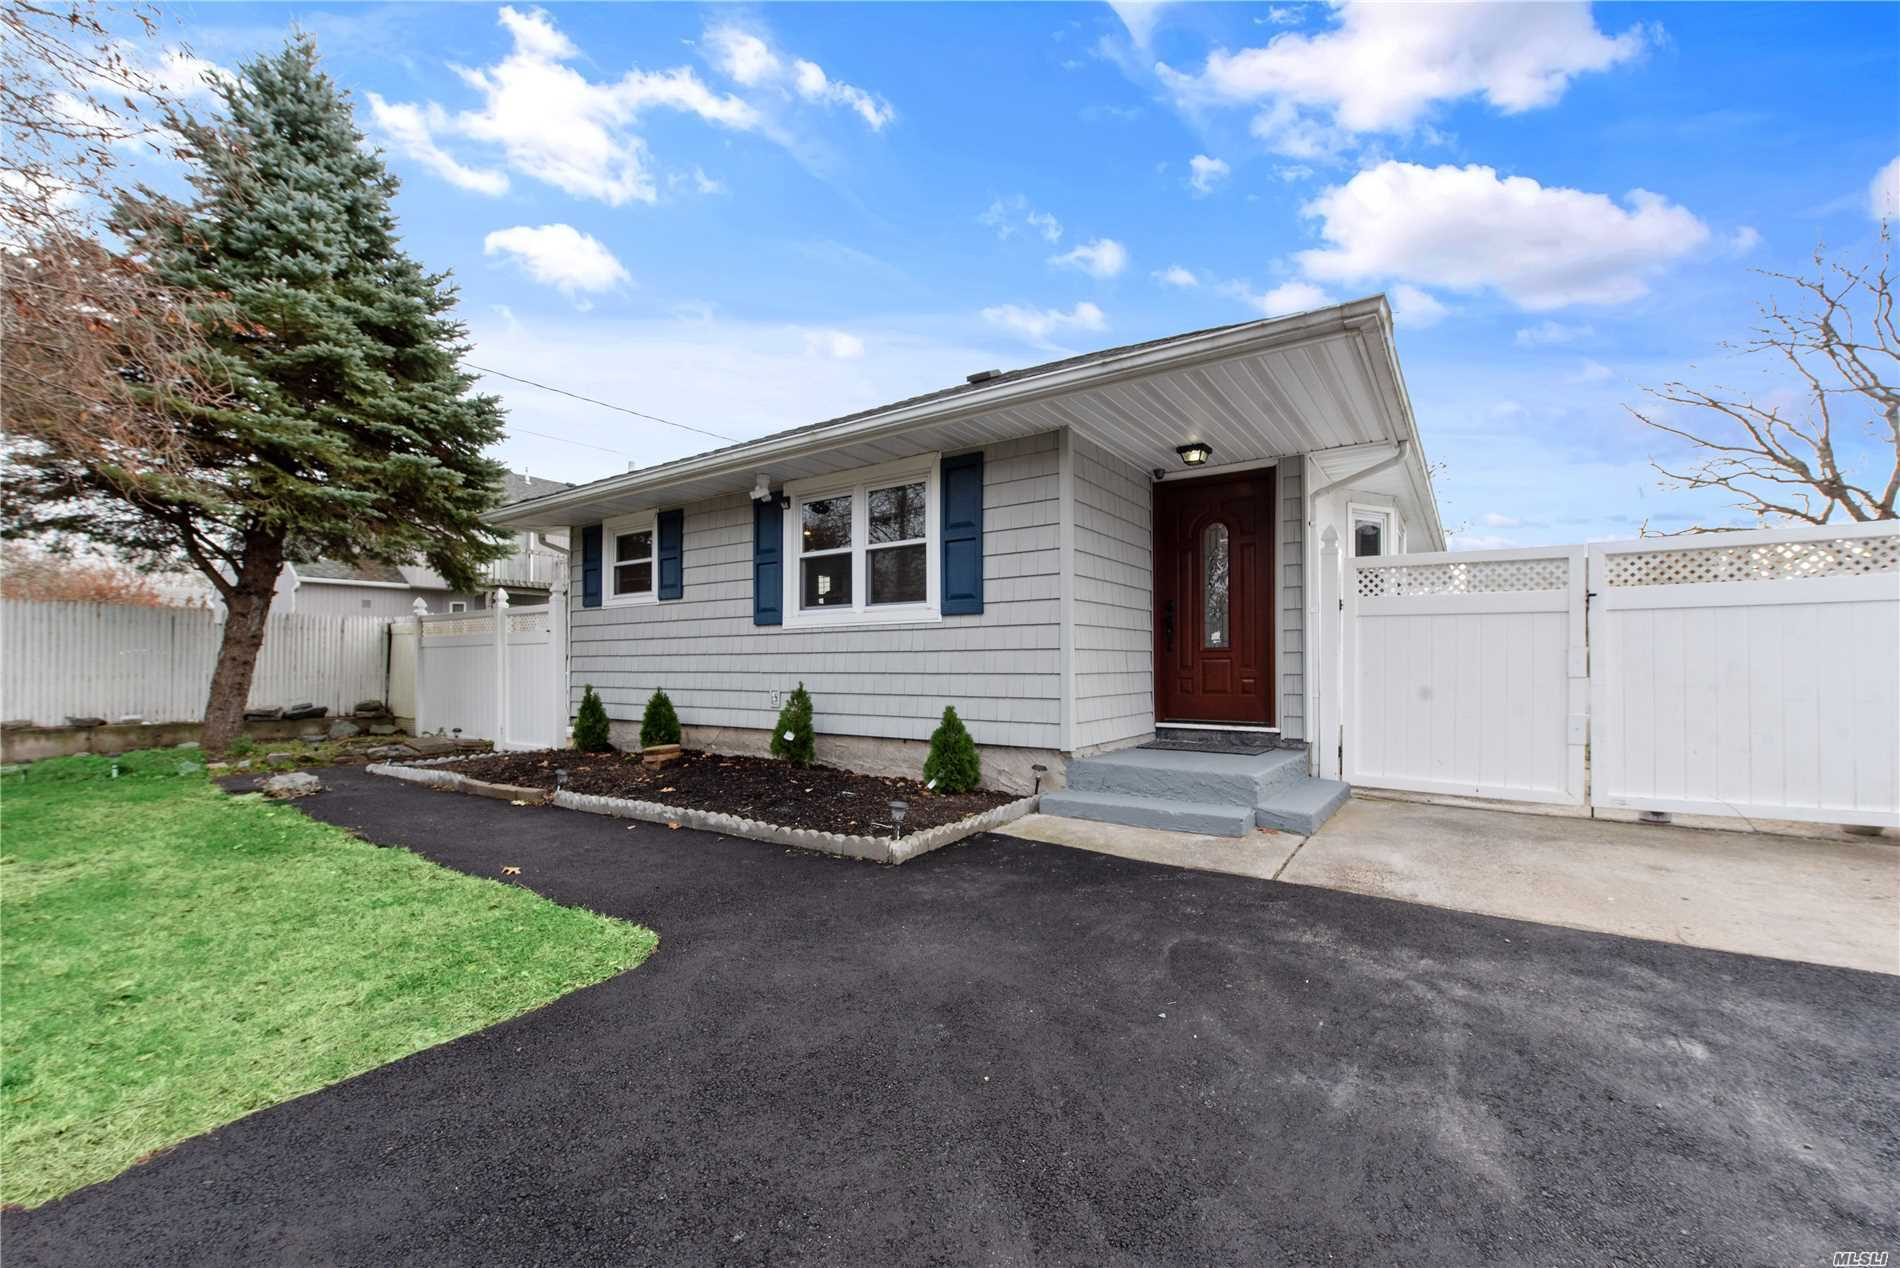 This Move-In-Ready Home Is Less Than 5 Minutes From Smith Point Beach! After A Long Day Of Work This Home Will Give The Lucky New Owner A Chance To Relax And Unwind, Creating A Life Of Comfort And Relaxation! Enjoy Your Pool Or A Stroll To Smith-Point Beach! This Beautiful Landscaped Charming Ranch Has Many Updates Throughout. Just Need Your Finishing Touches To Call Home!